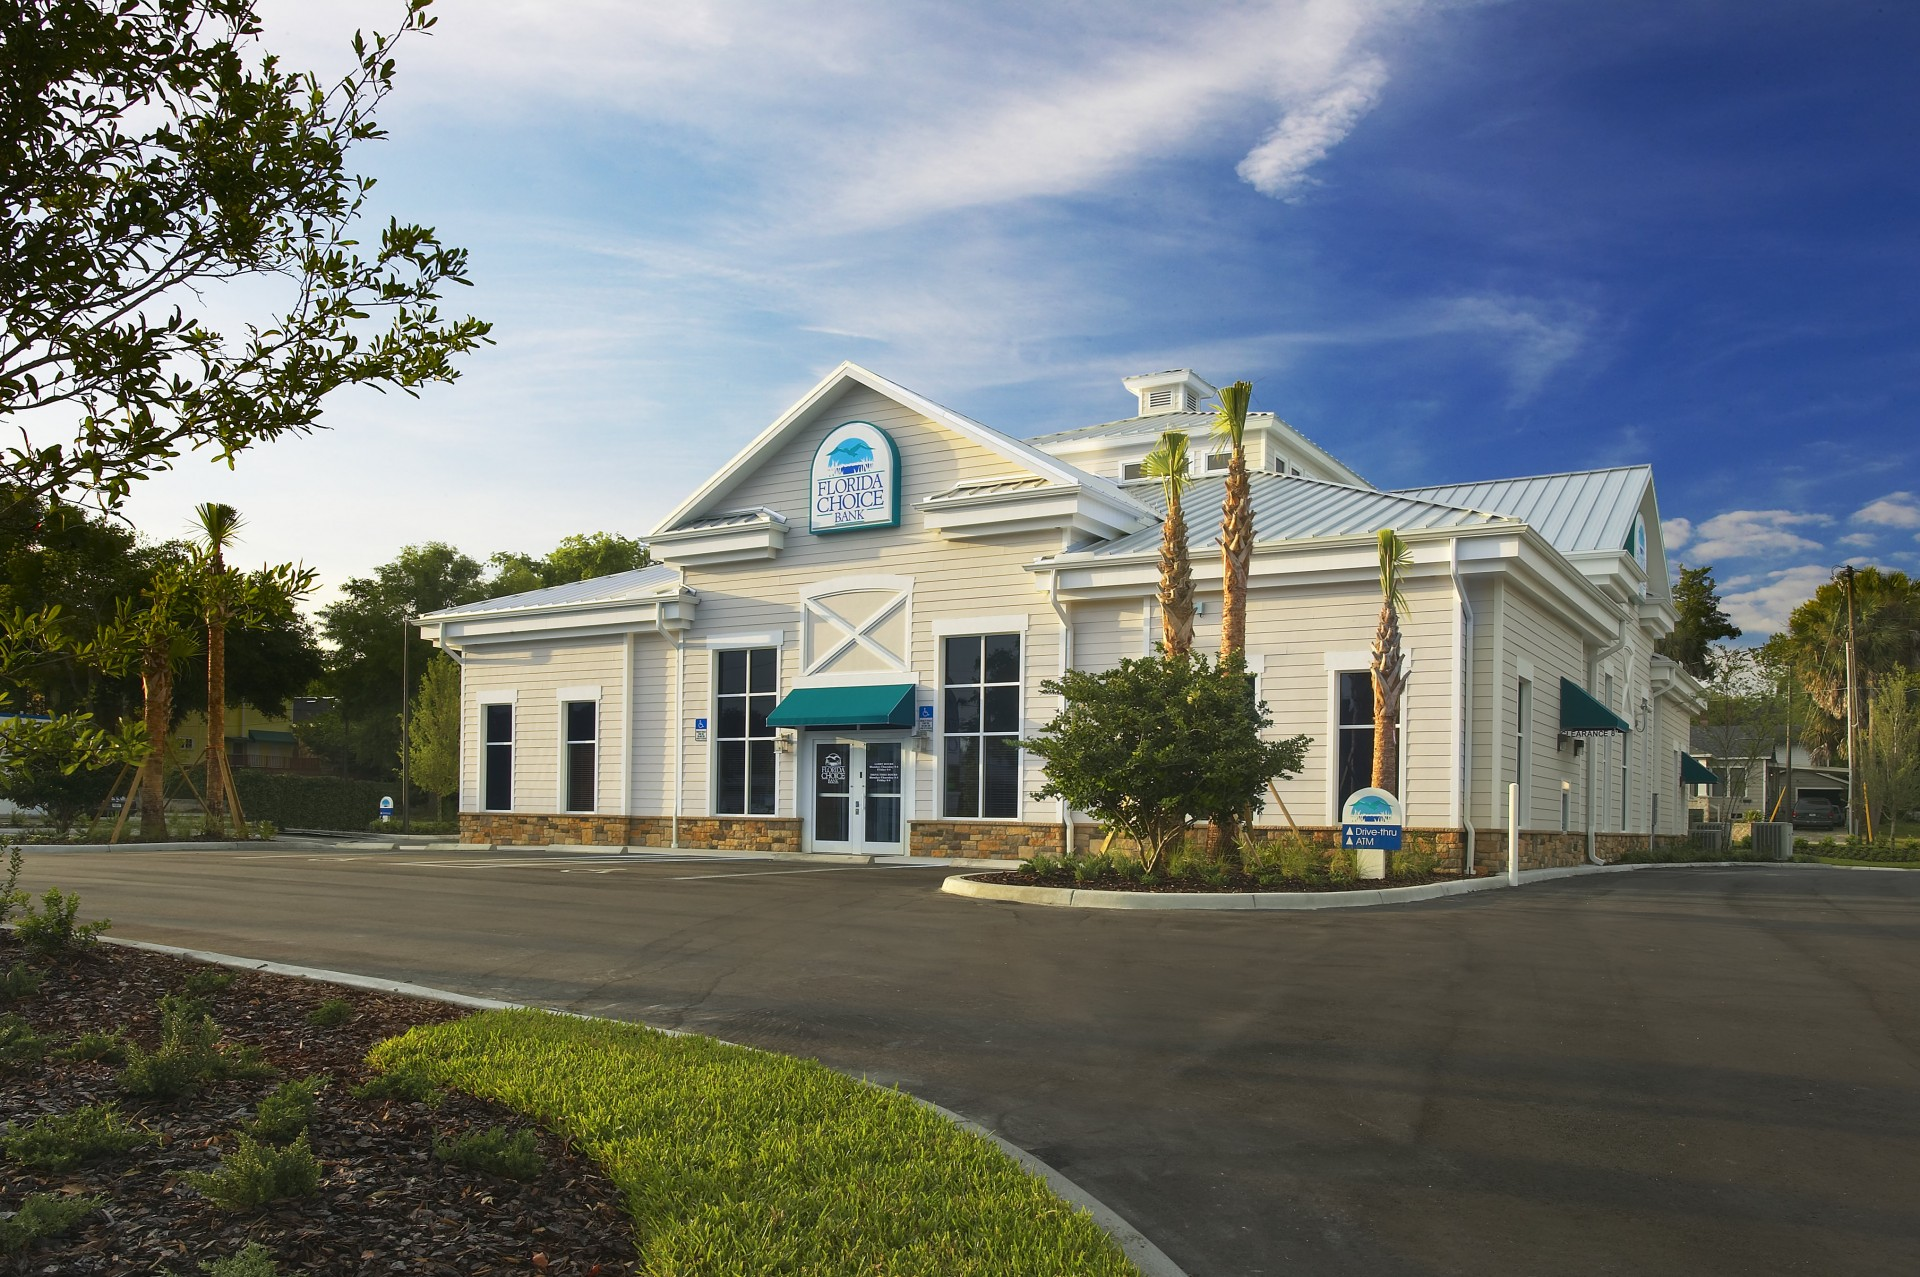 RBC FLORIDA CHOICE BANK1